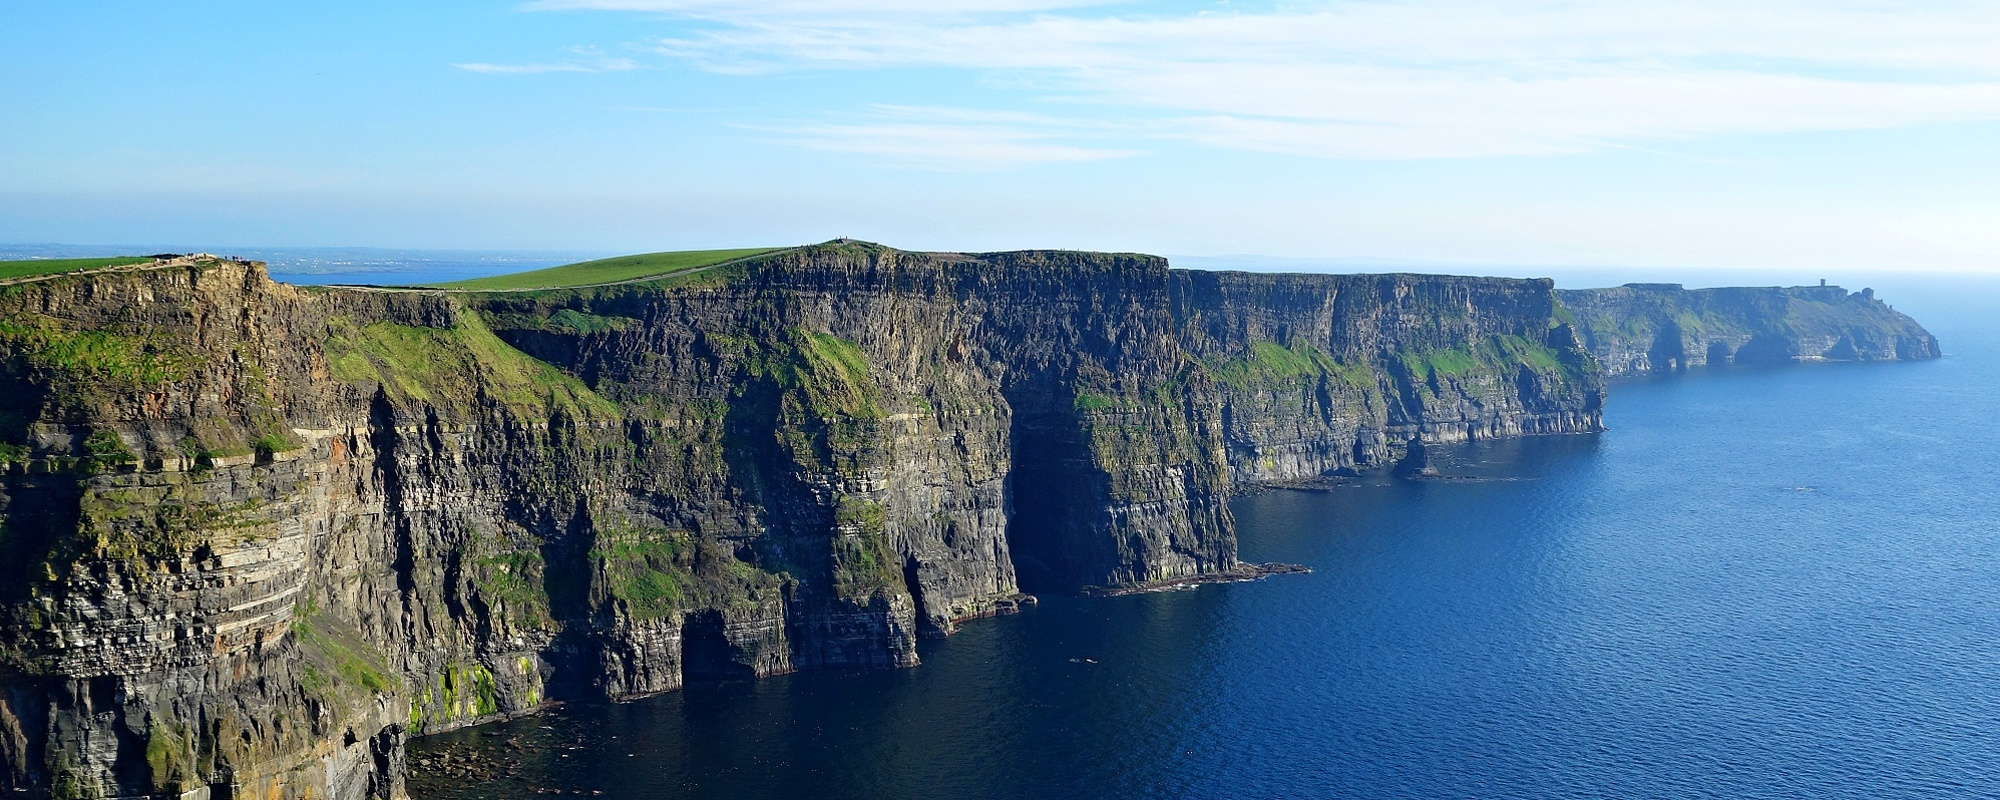 Cliffs Of Moher Travel Vip